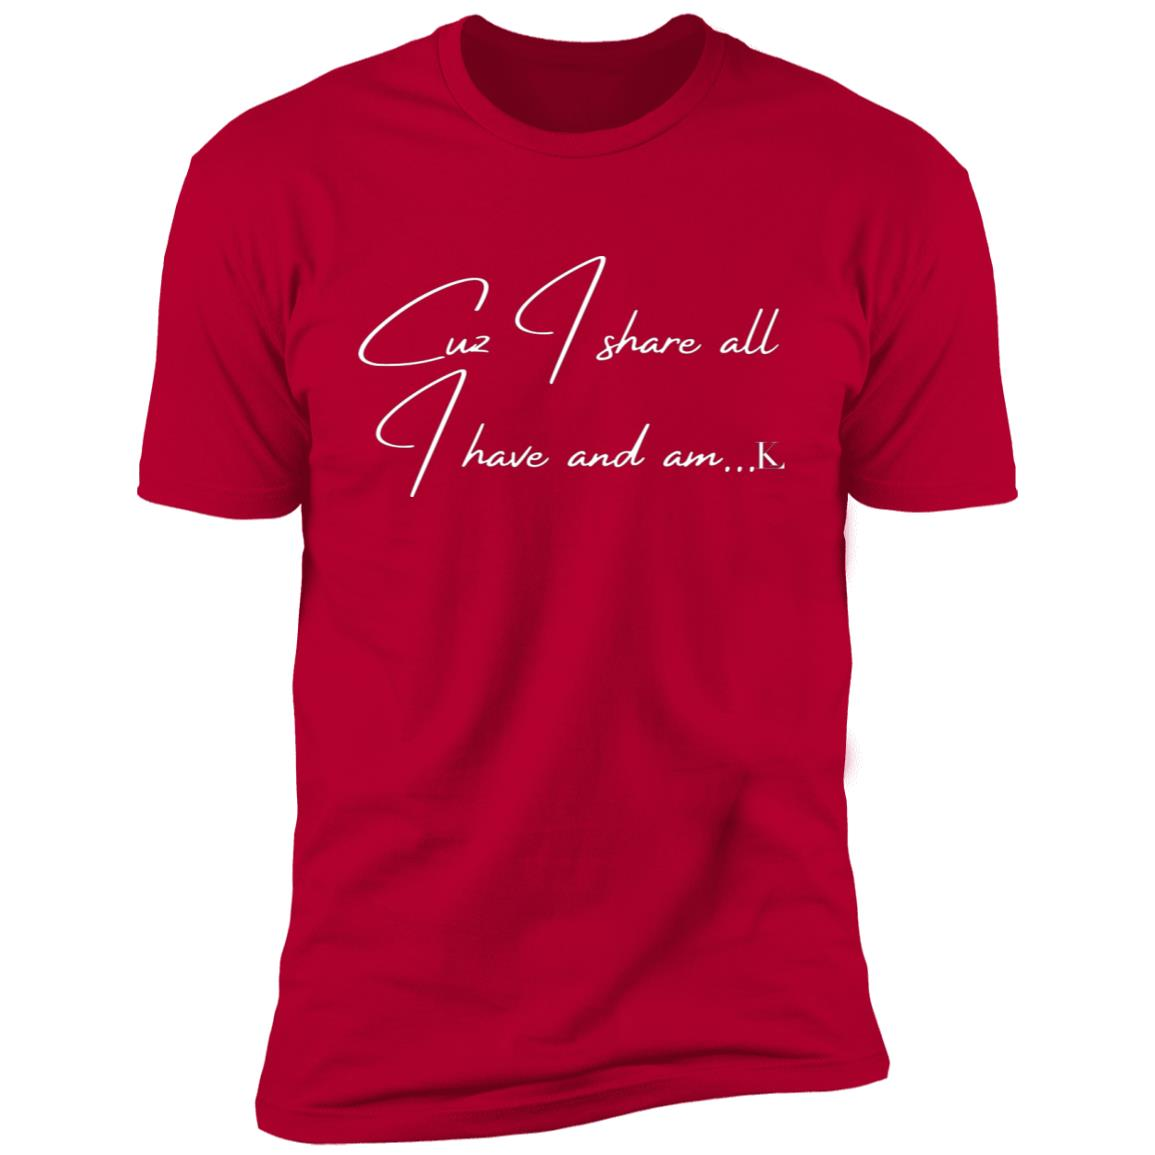 Cuz I Share All I Have And Am... Men's Short Sleeve T-Shirt